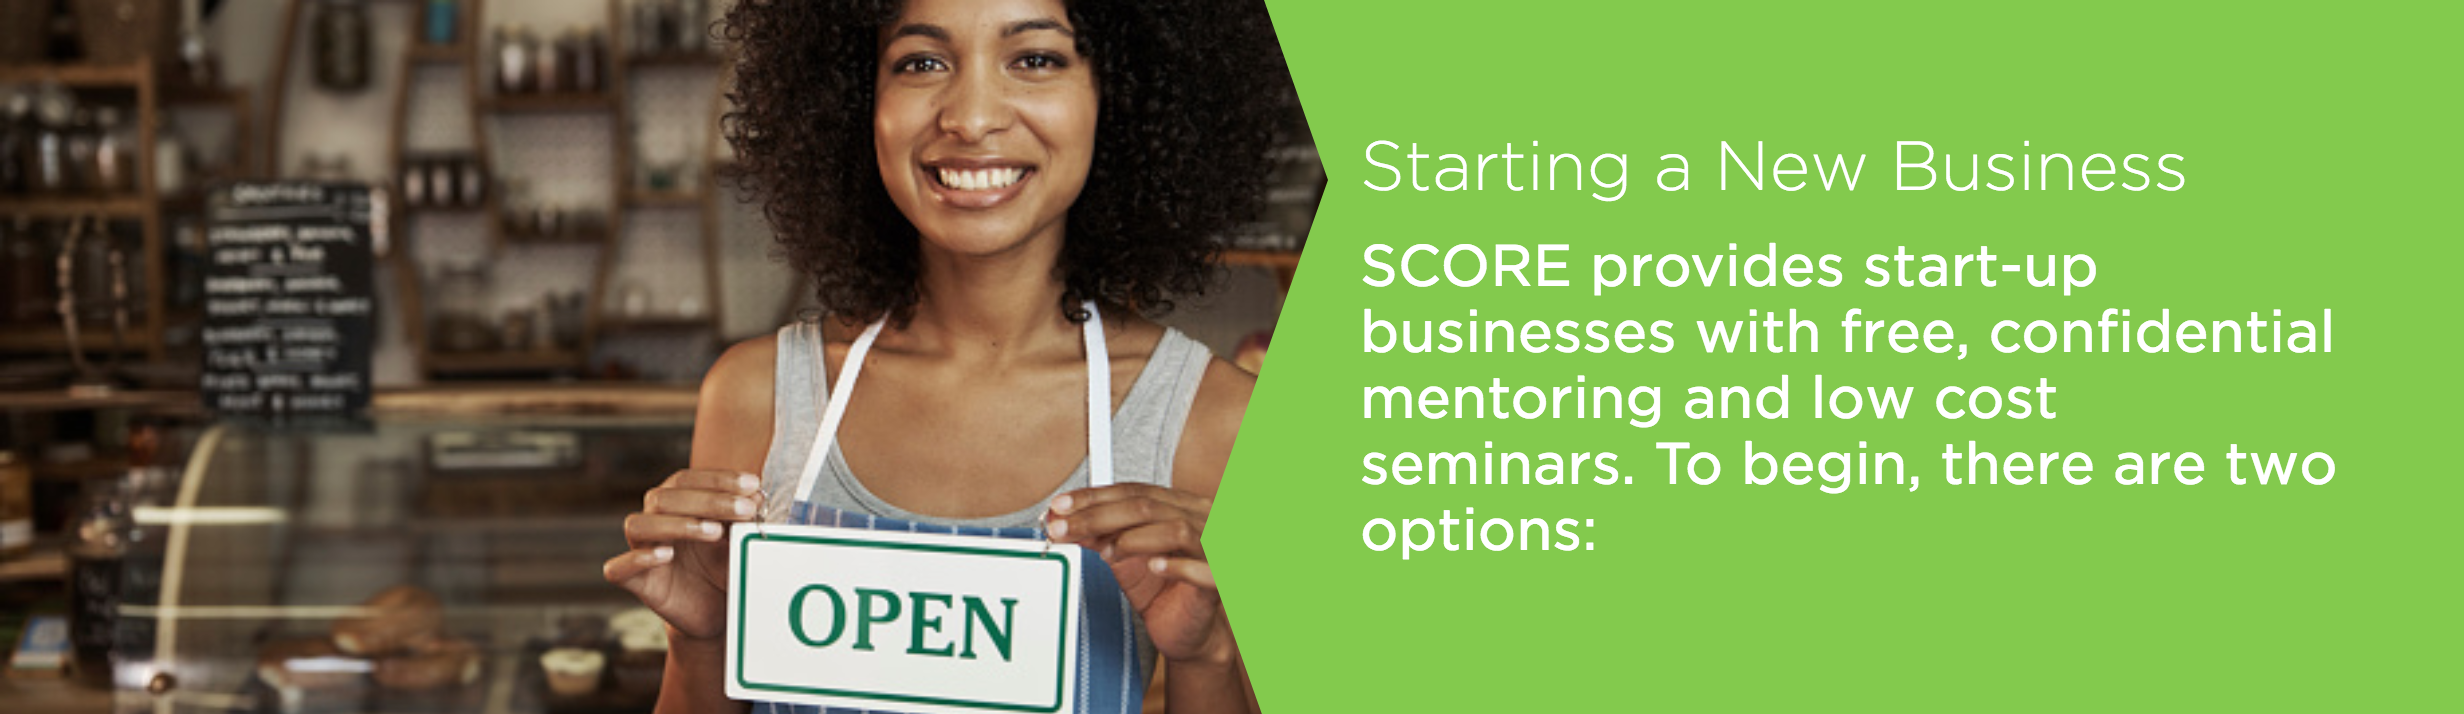 SCORE - Start a business image.png